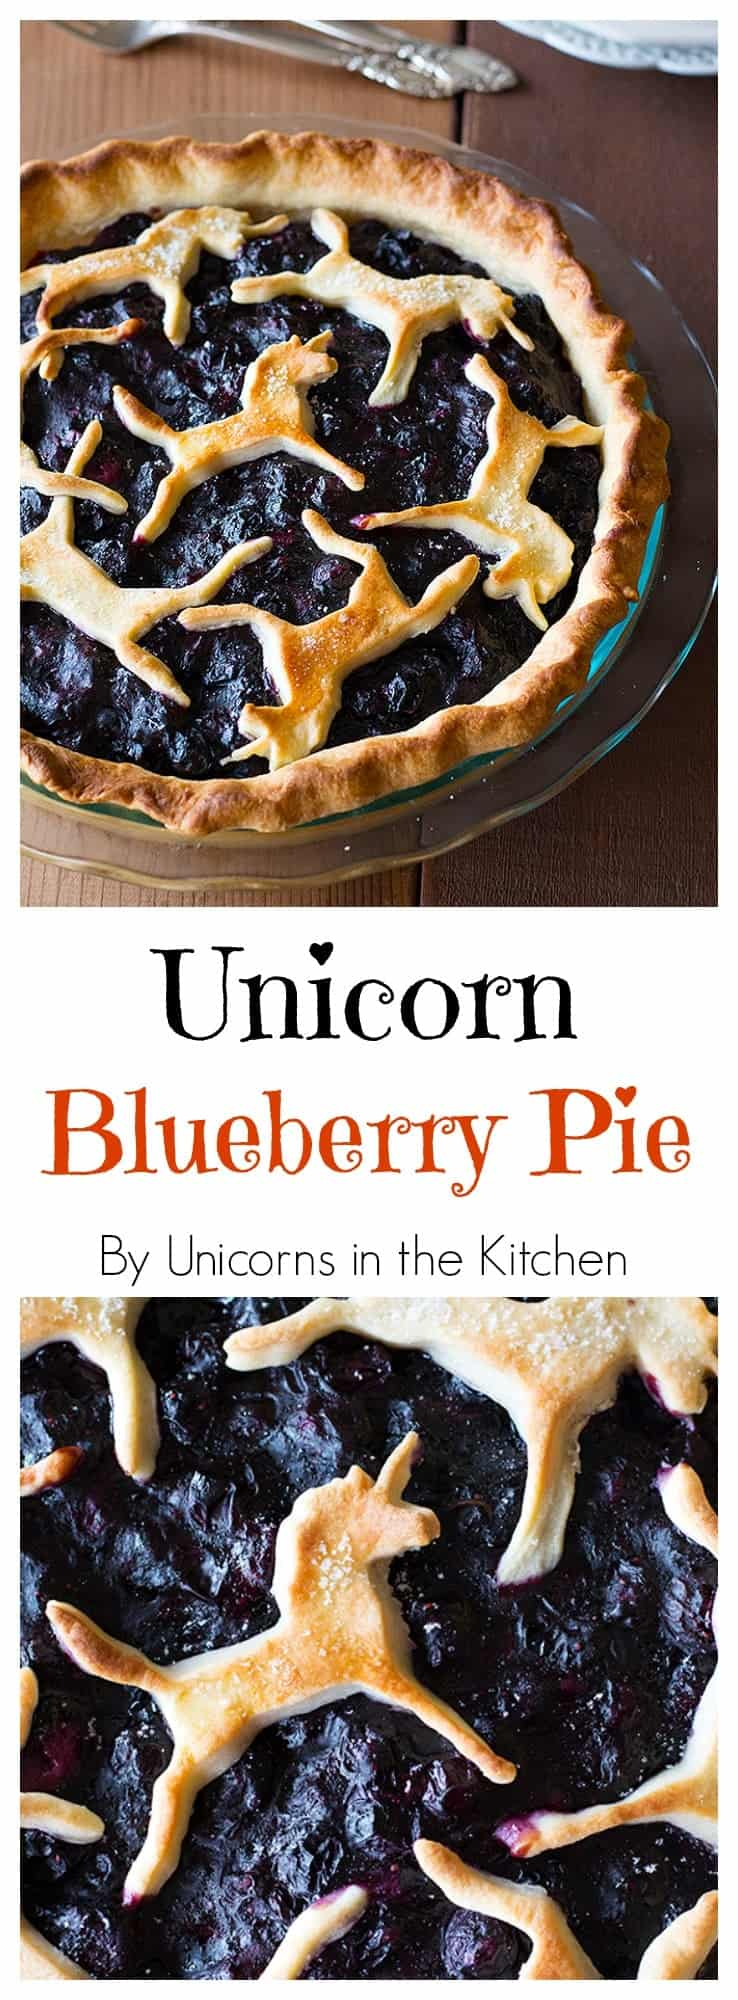 This is best ever unicorn blueberry pie, drip free and with a flaky crust! An extra step makes the filling so silky and nice!